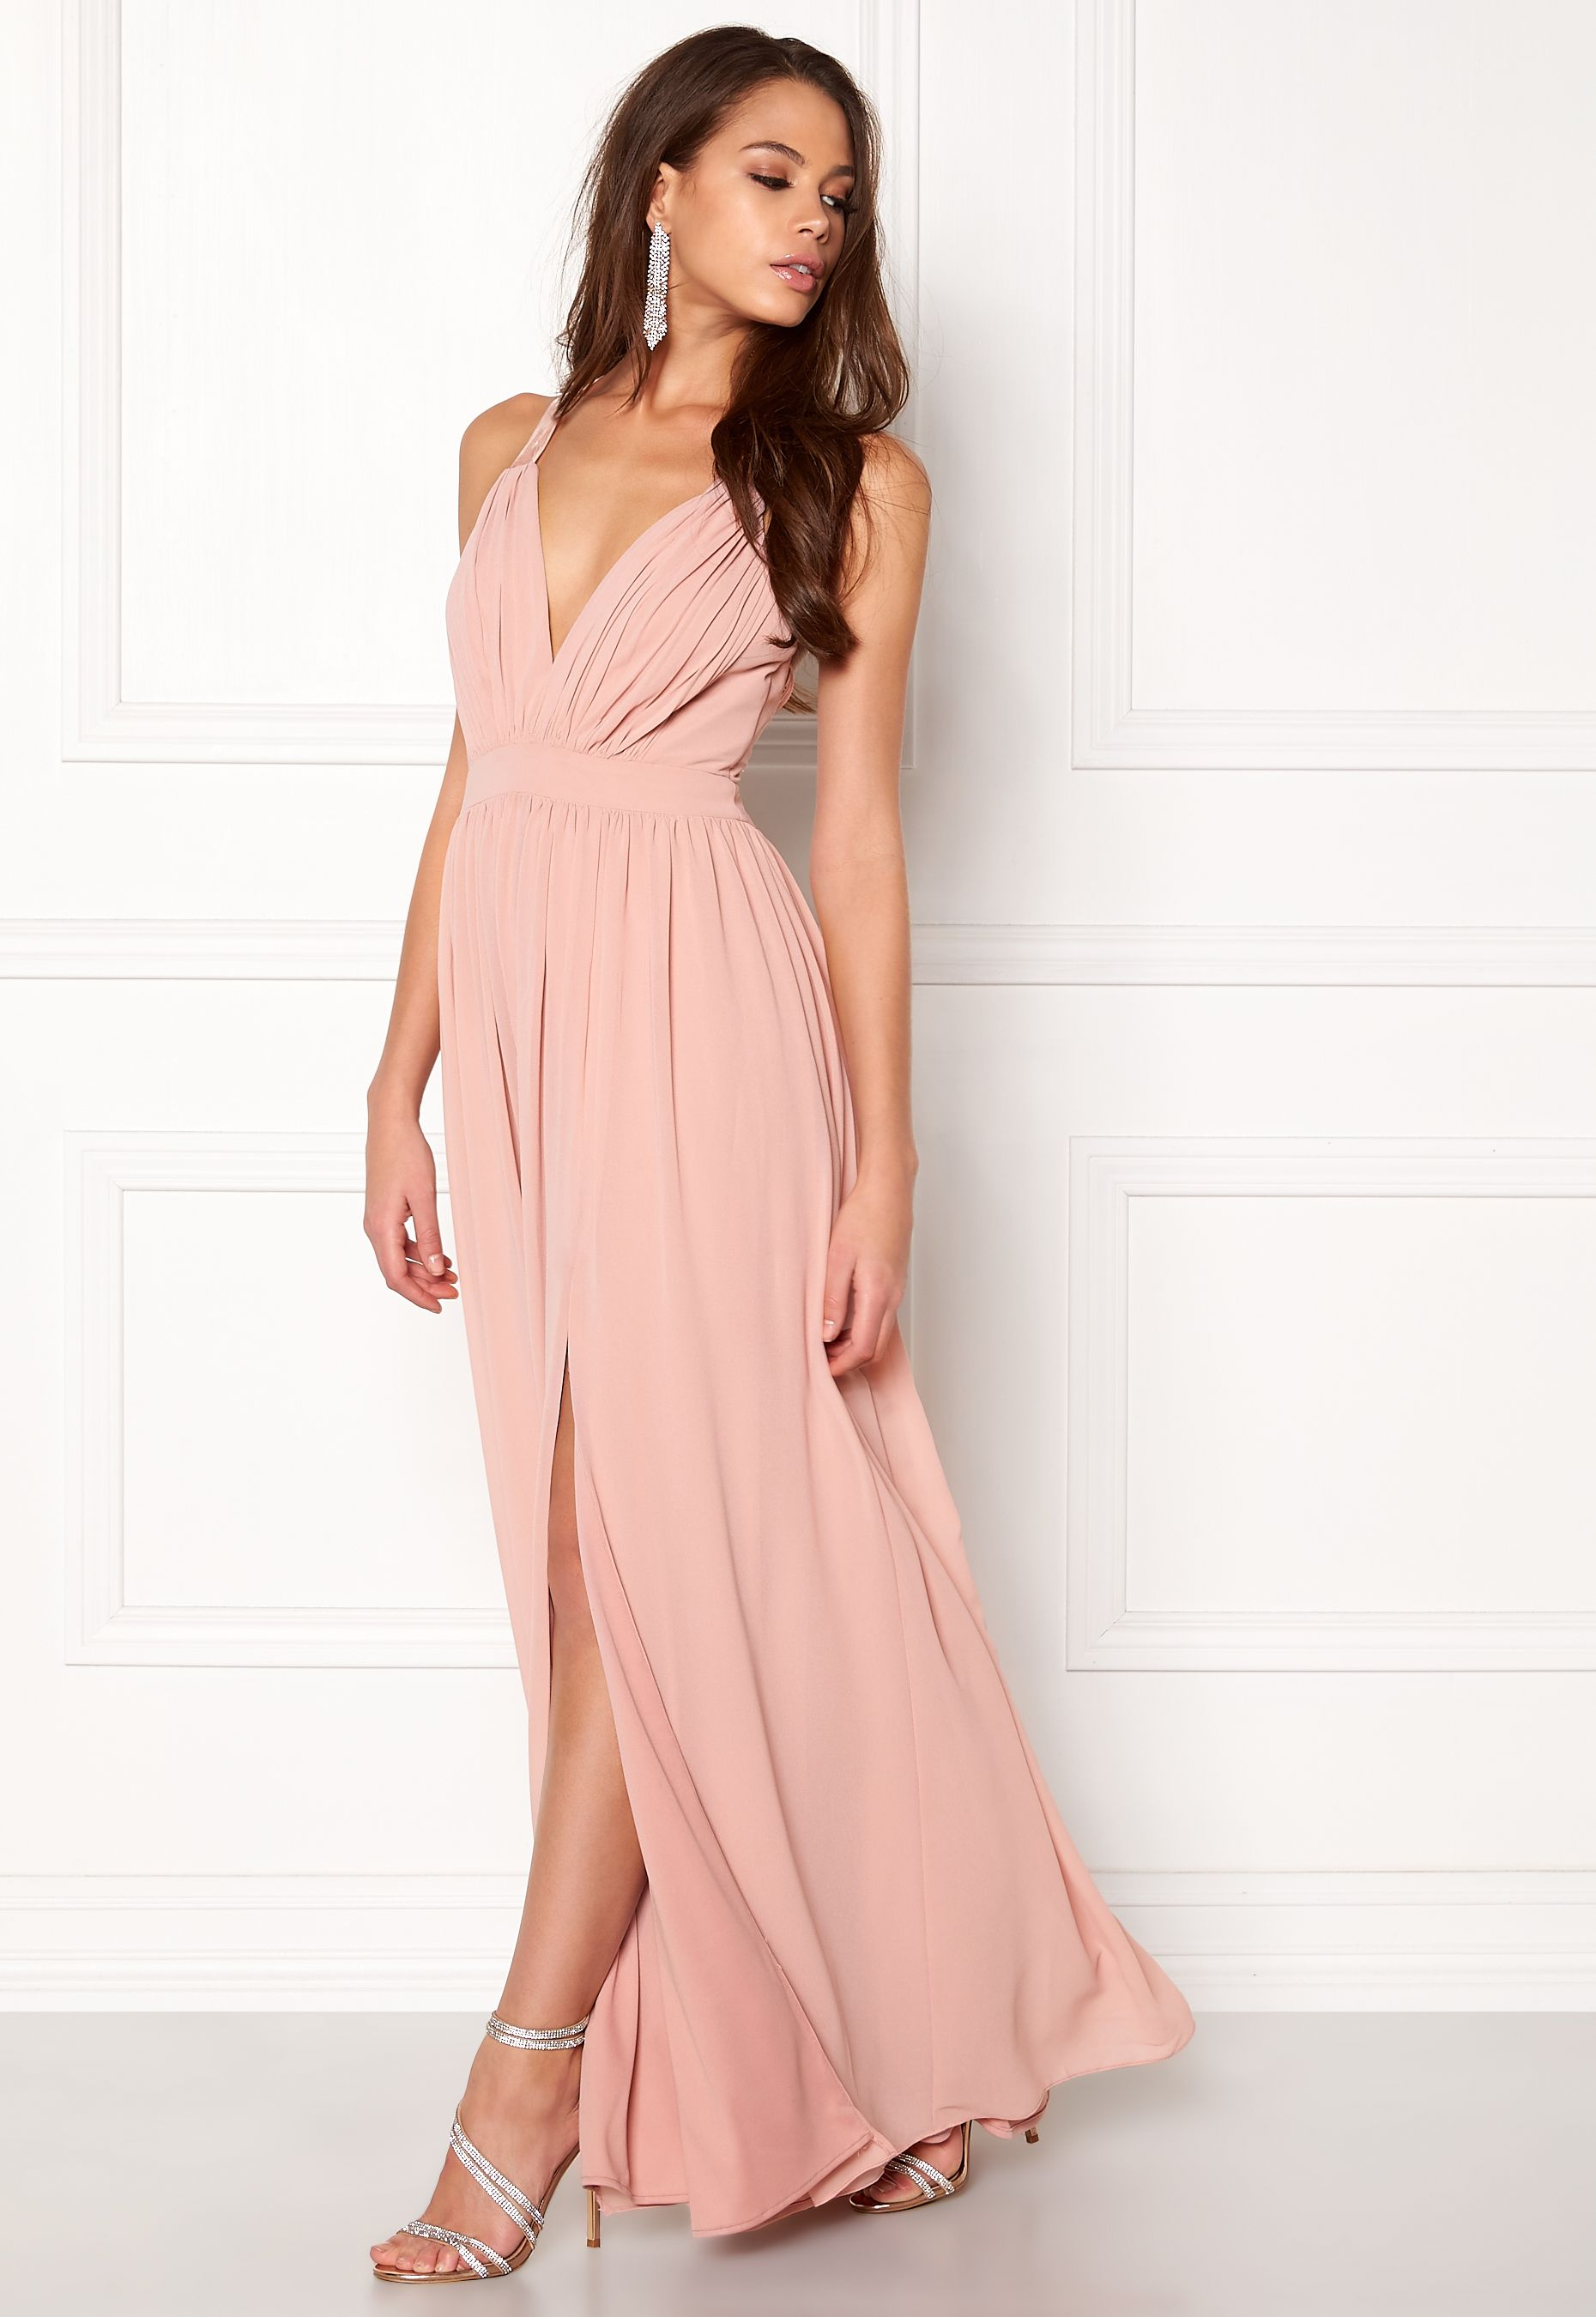 6d96b604db01 Make Way Jonna Maxi Dress Dusty pink - Bubbleroom | balklänningar ...